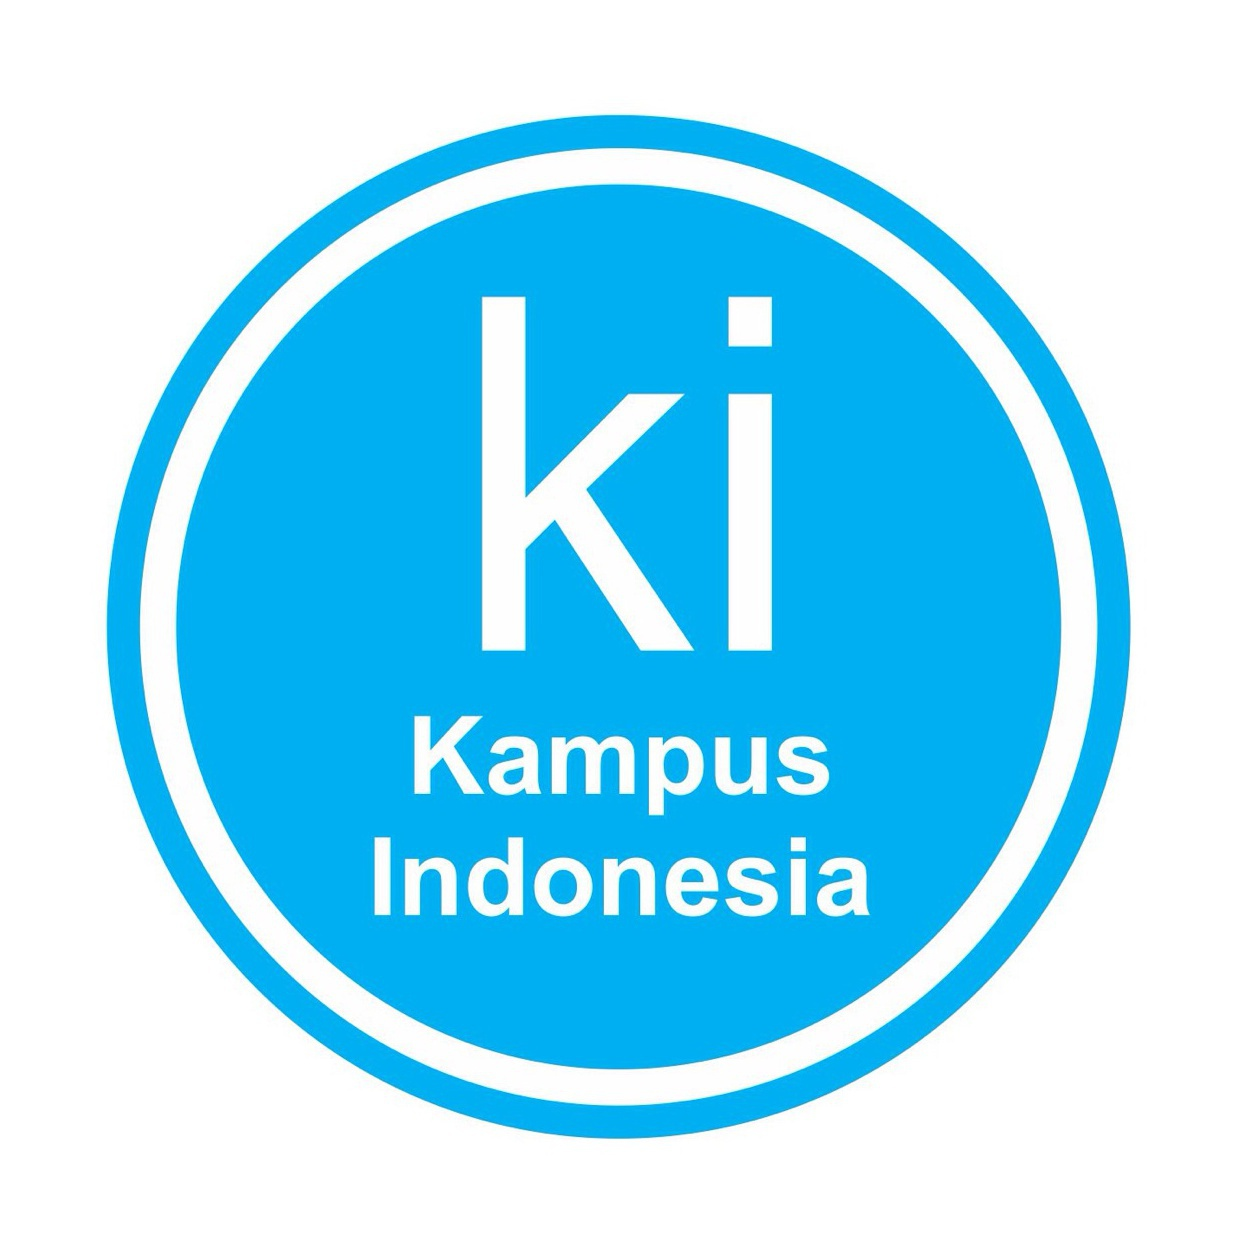 Kampus Indonesia